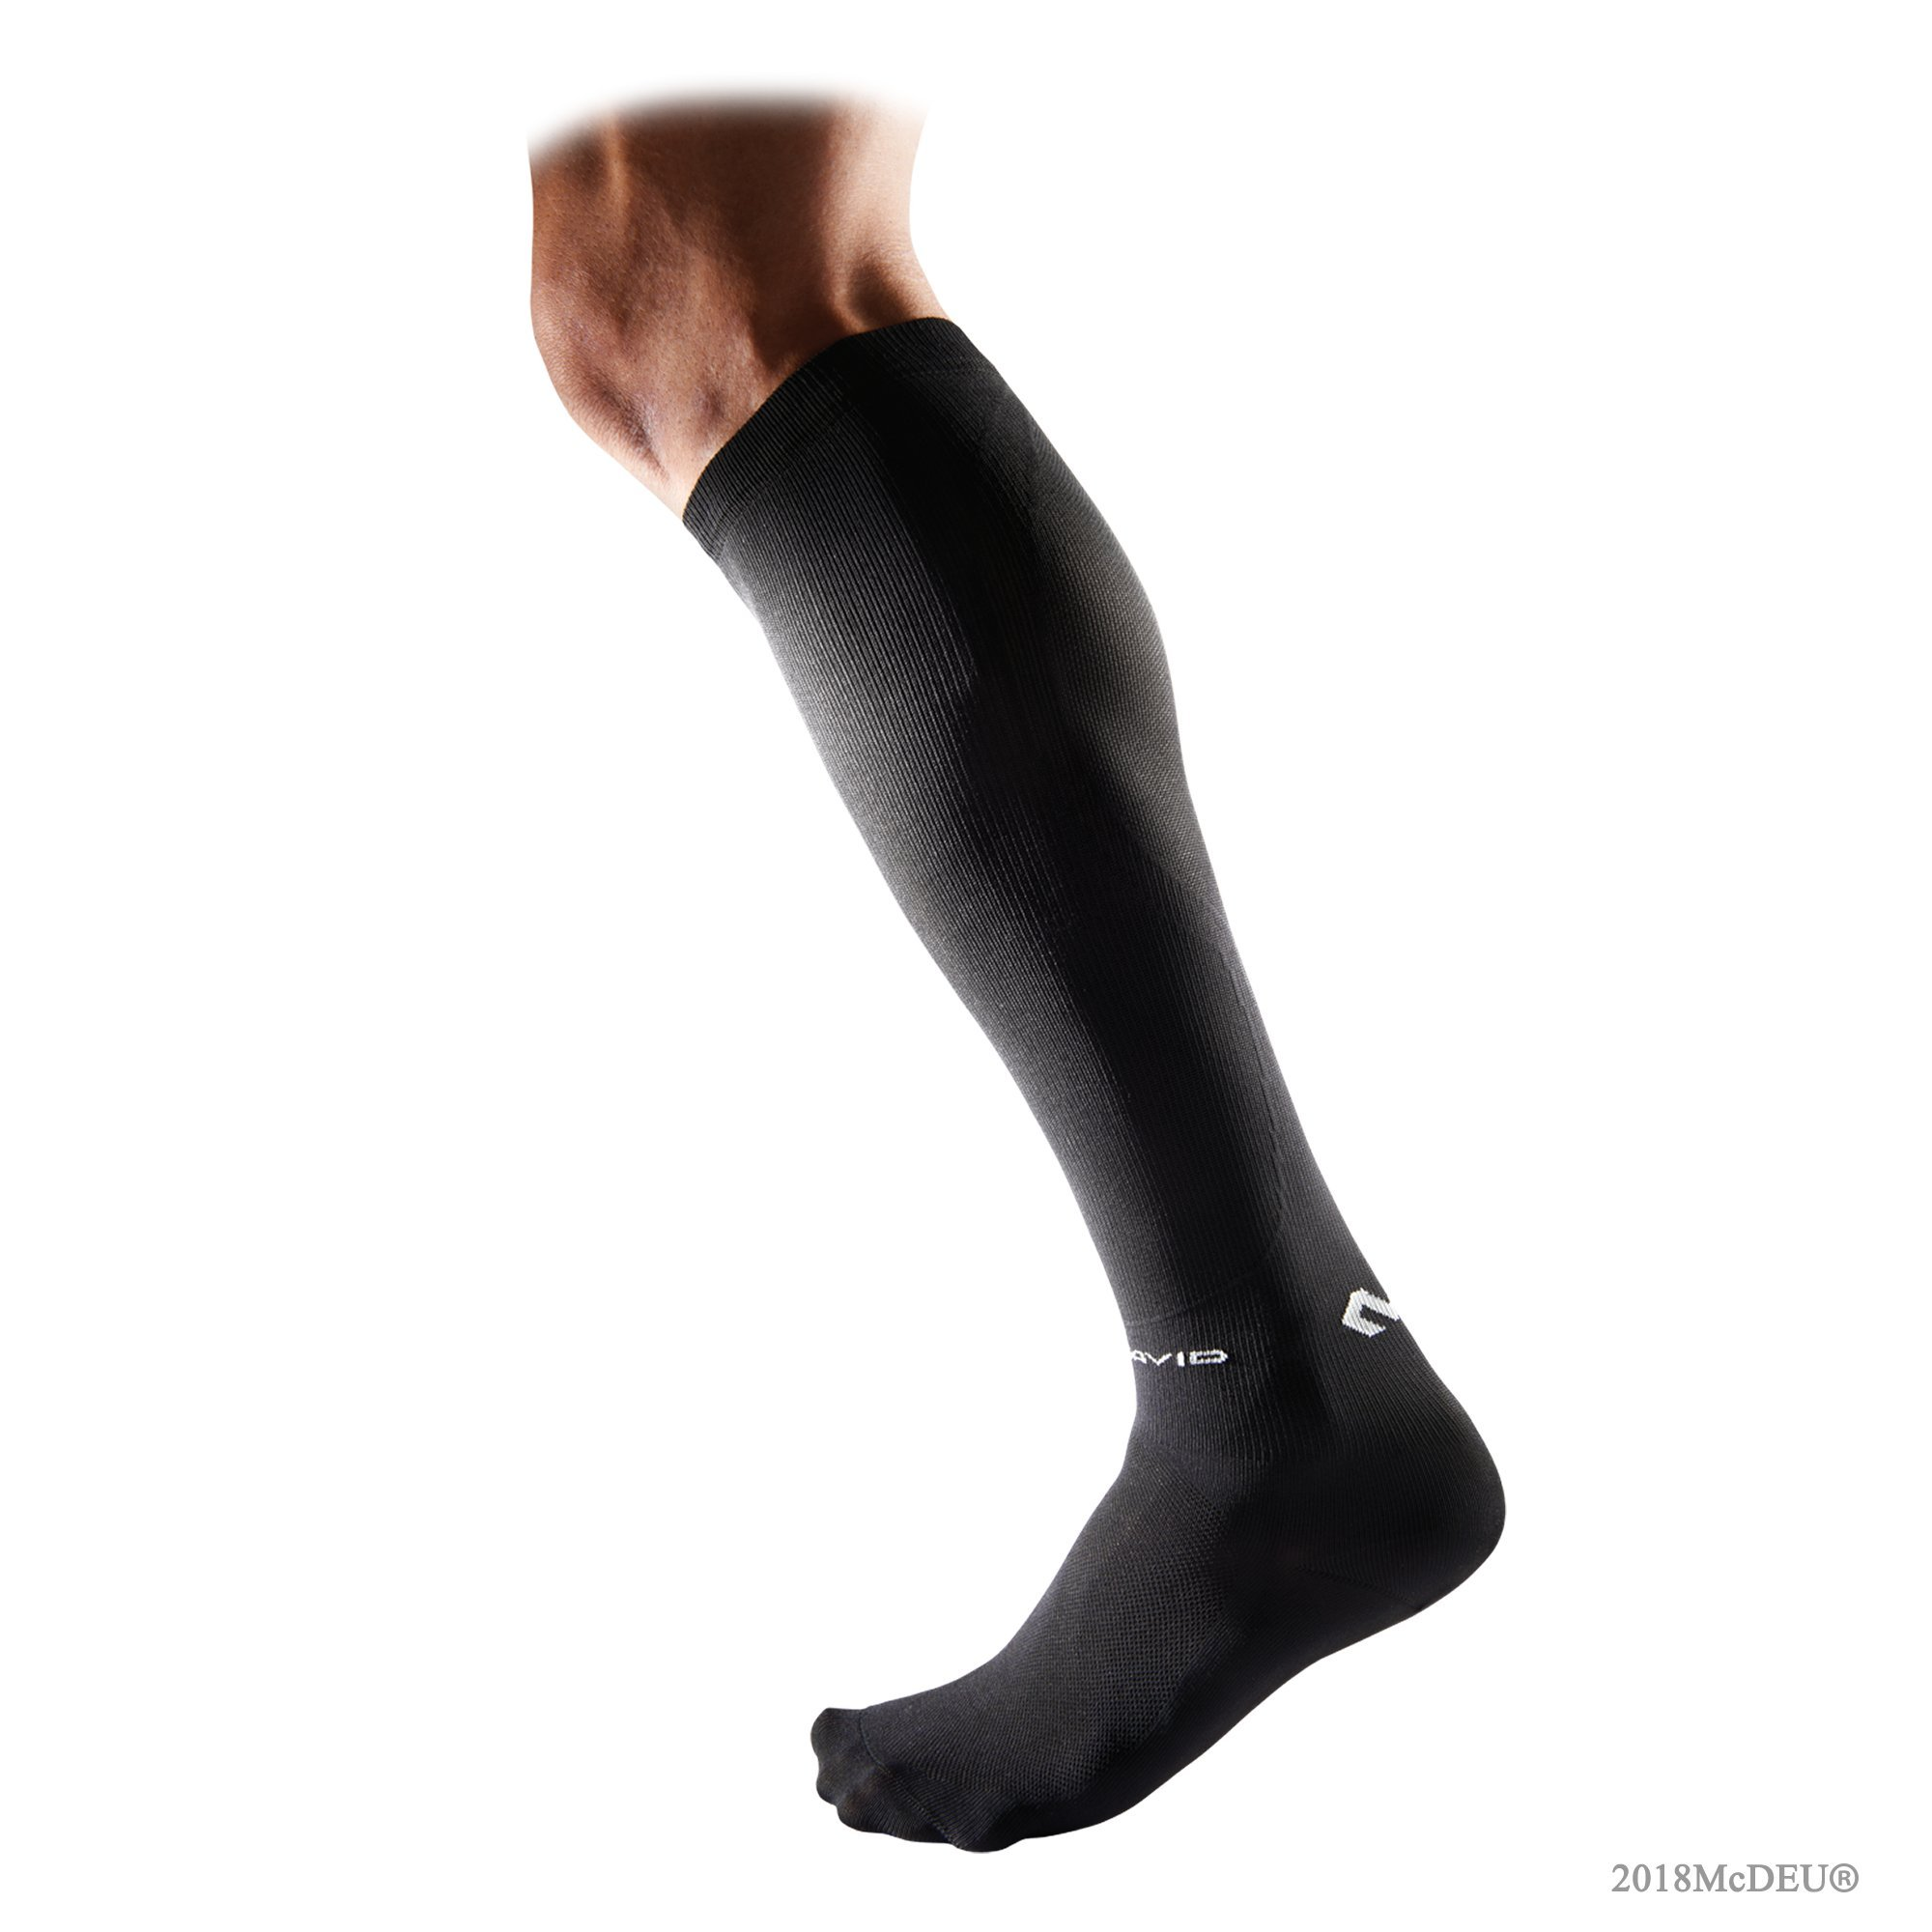 McDavid 8831 Rebound Compression Socks, Black, Size L